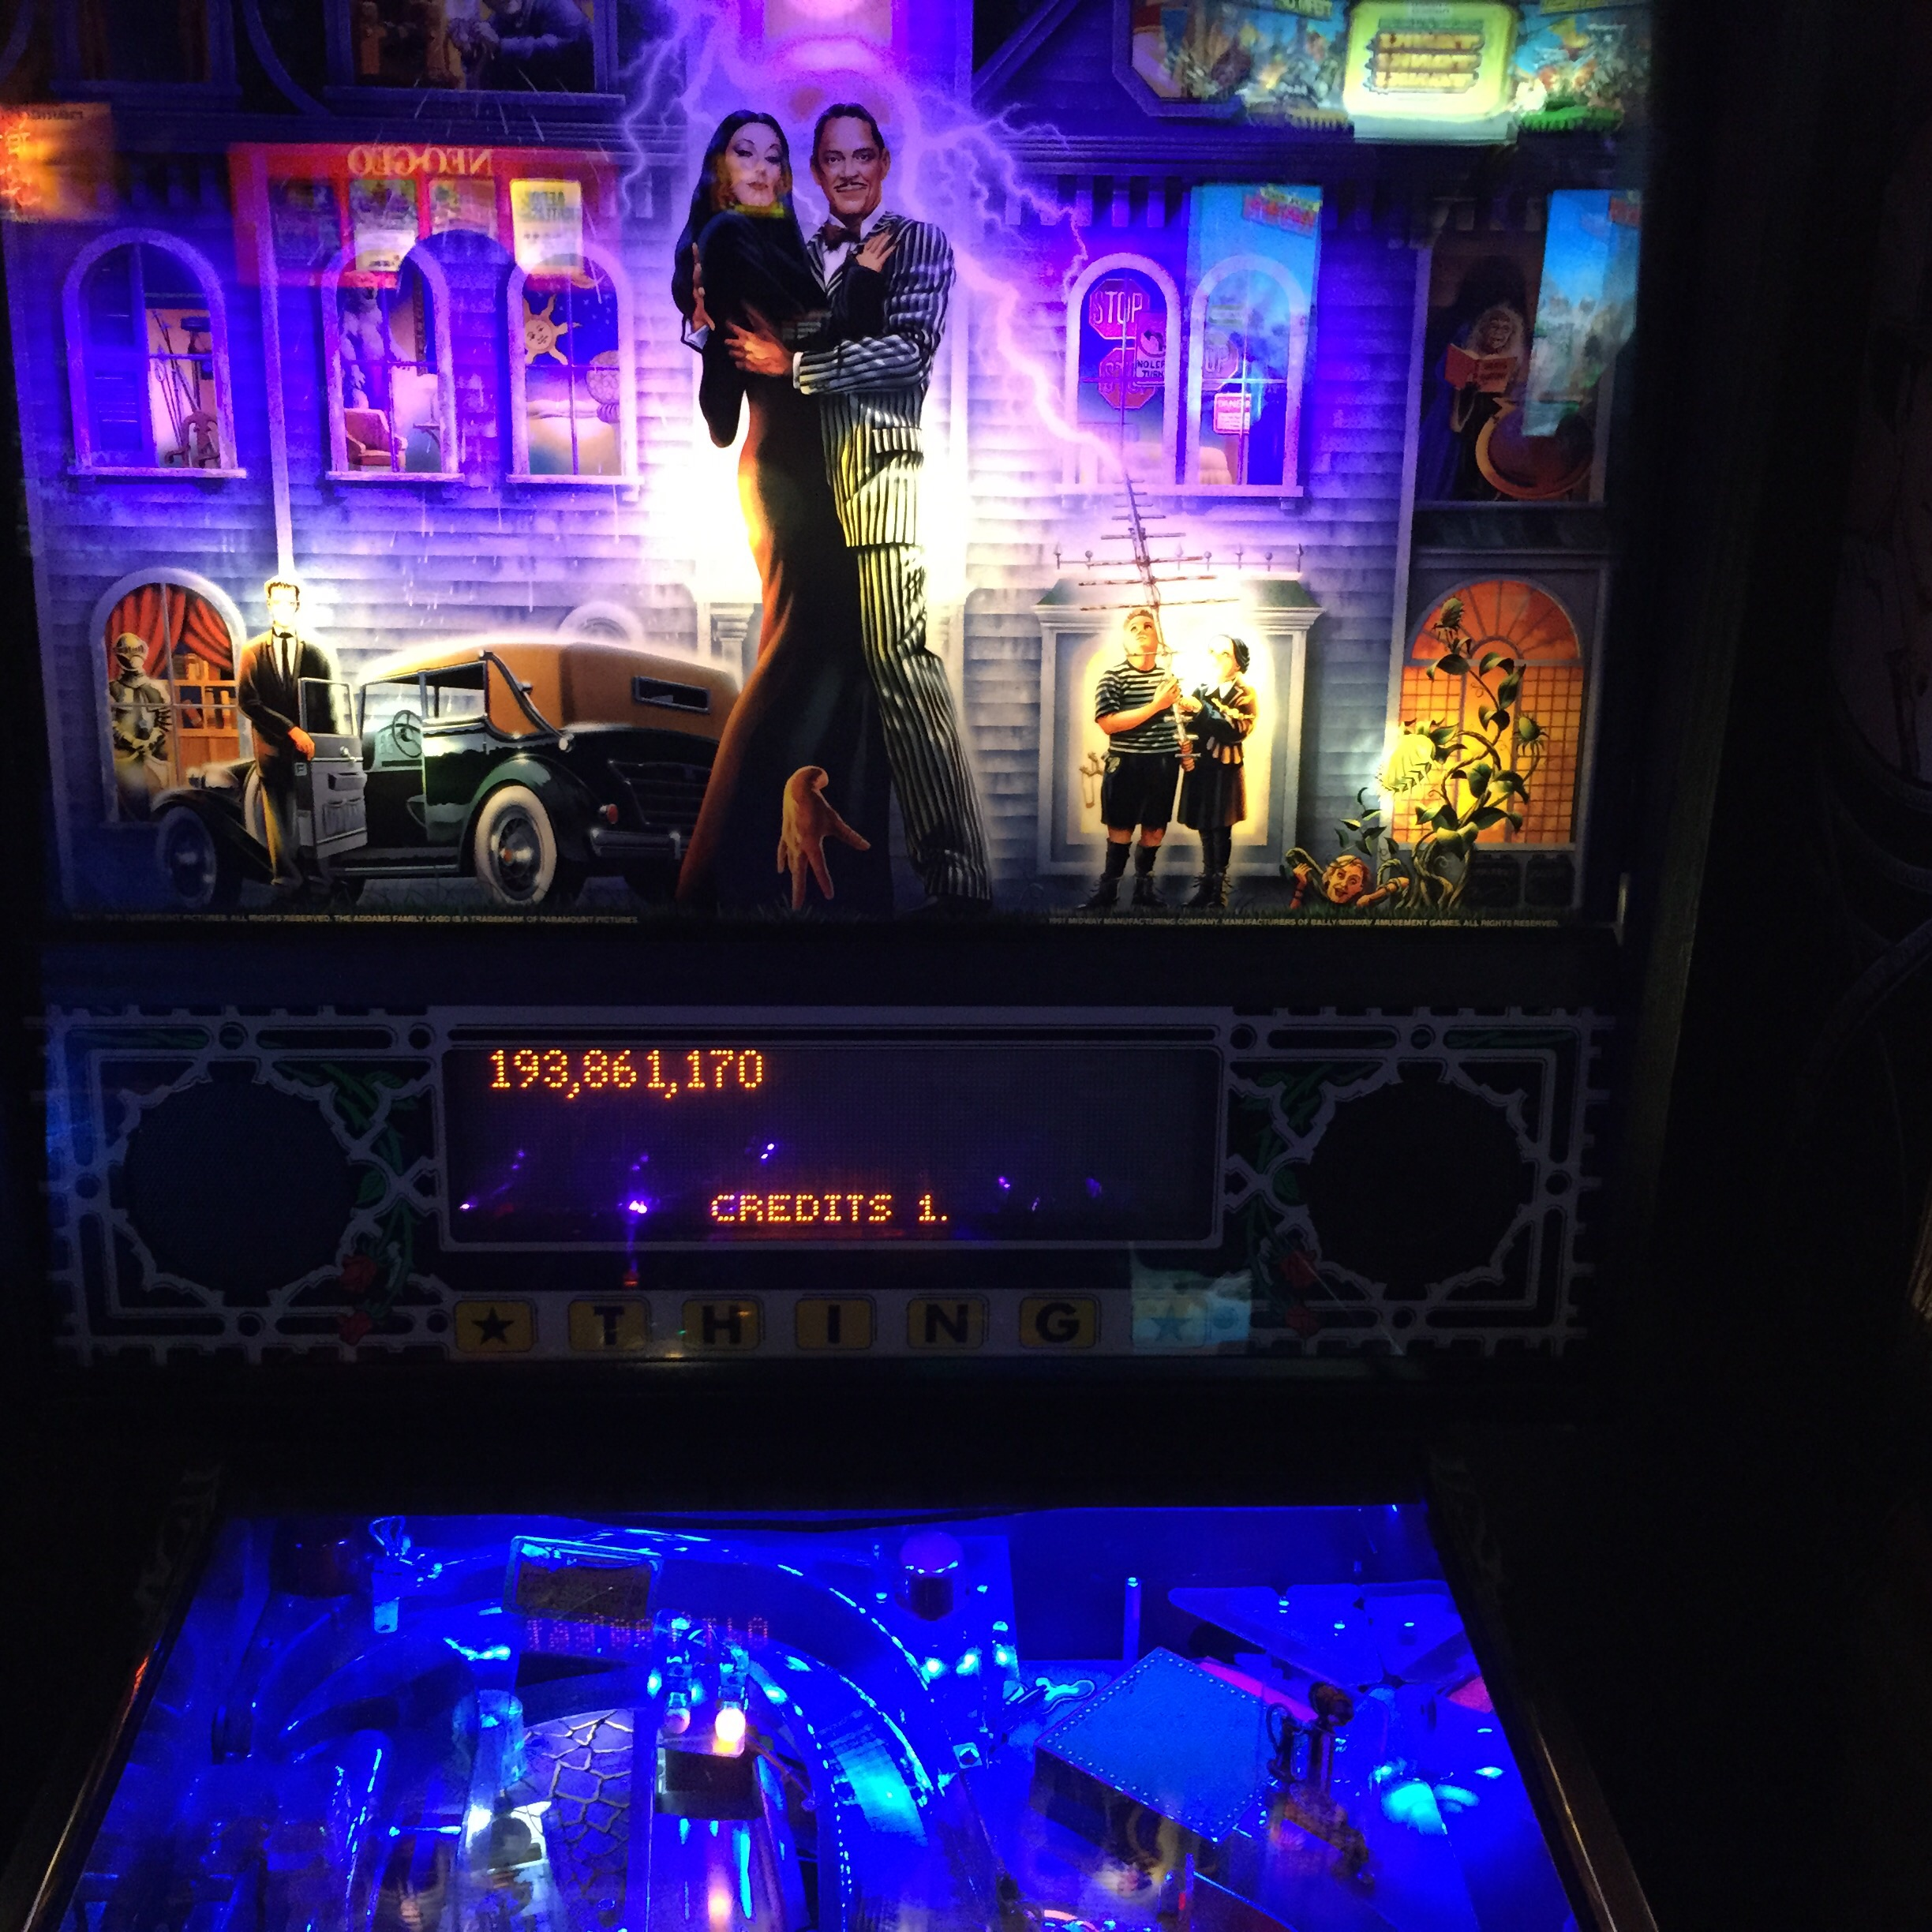 FosterAMF: The Addams Family (Pinball: 3 Balls) 193,861,170 points on 2015-07-02 11:39:32